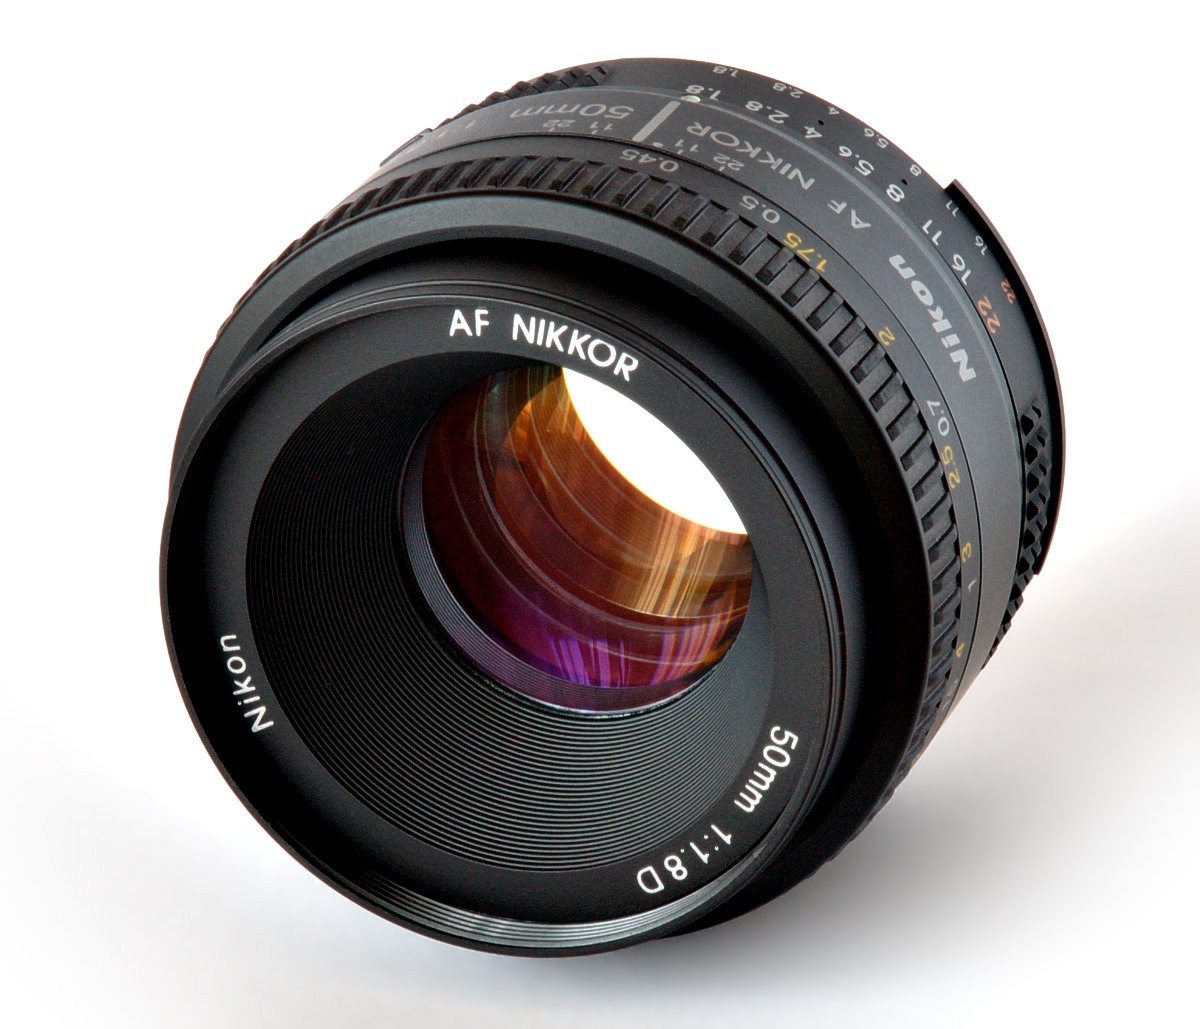 File:Lens Nikkor 50mm.jpg - Wikipedia, the free encyclopedia